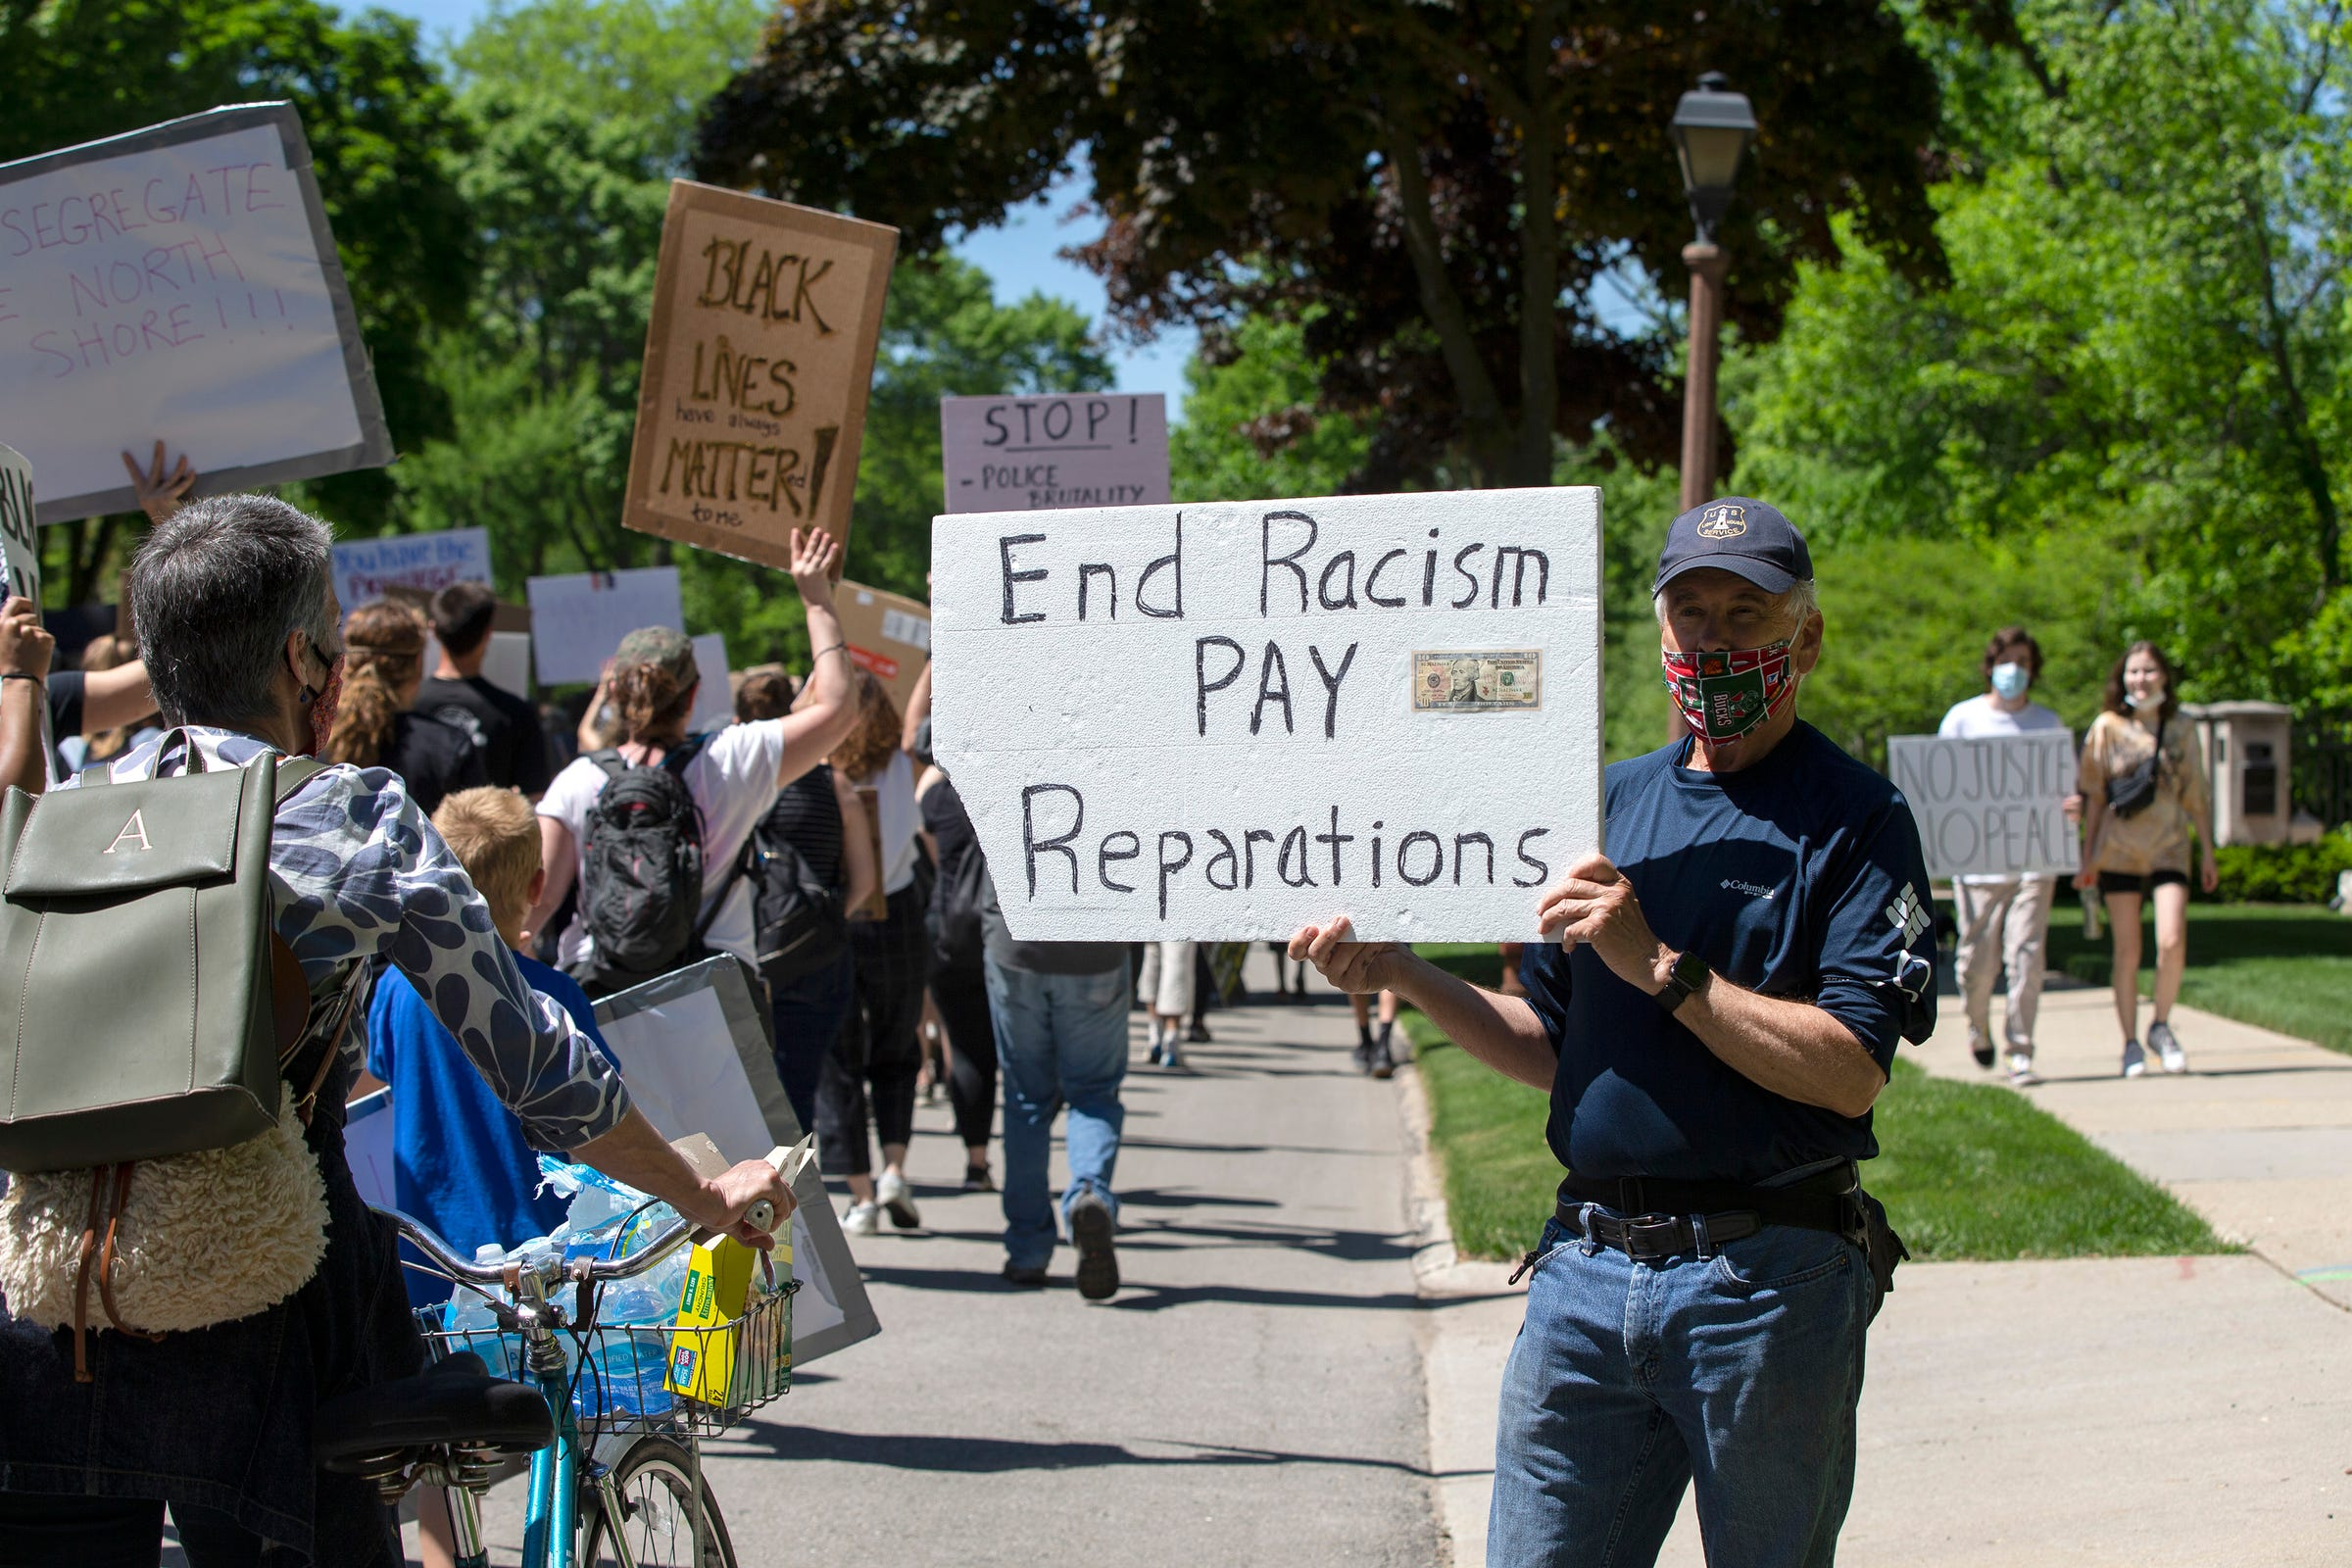 Donald McCauley, resident of Whitefish Bay, shows his sign and support to protesters on Saturday, June 6, 2020.